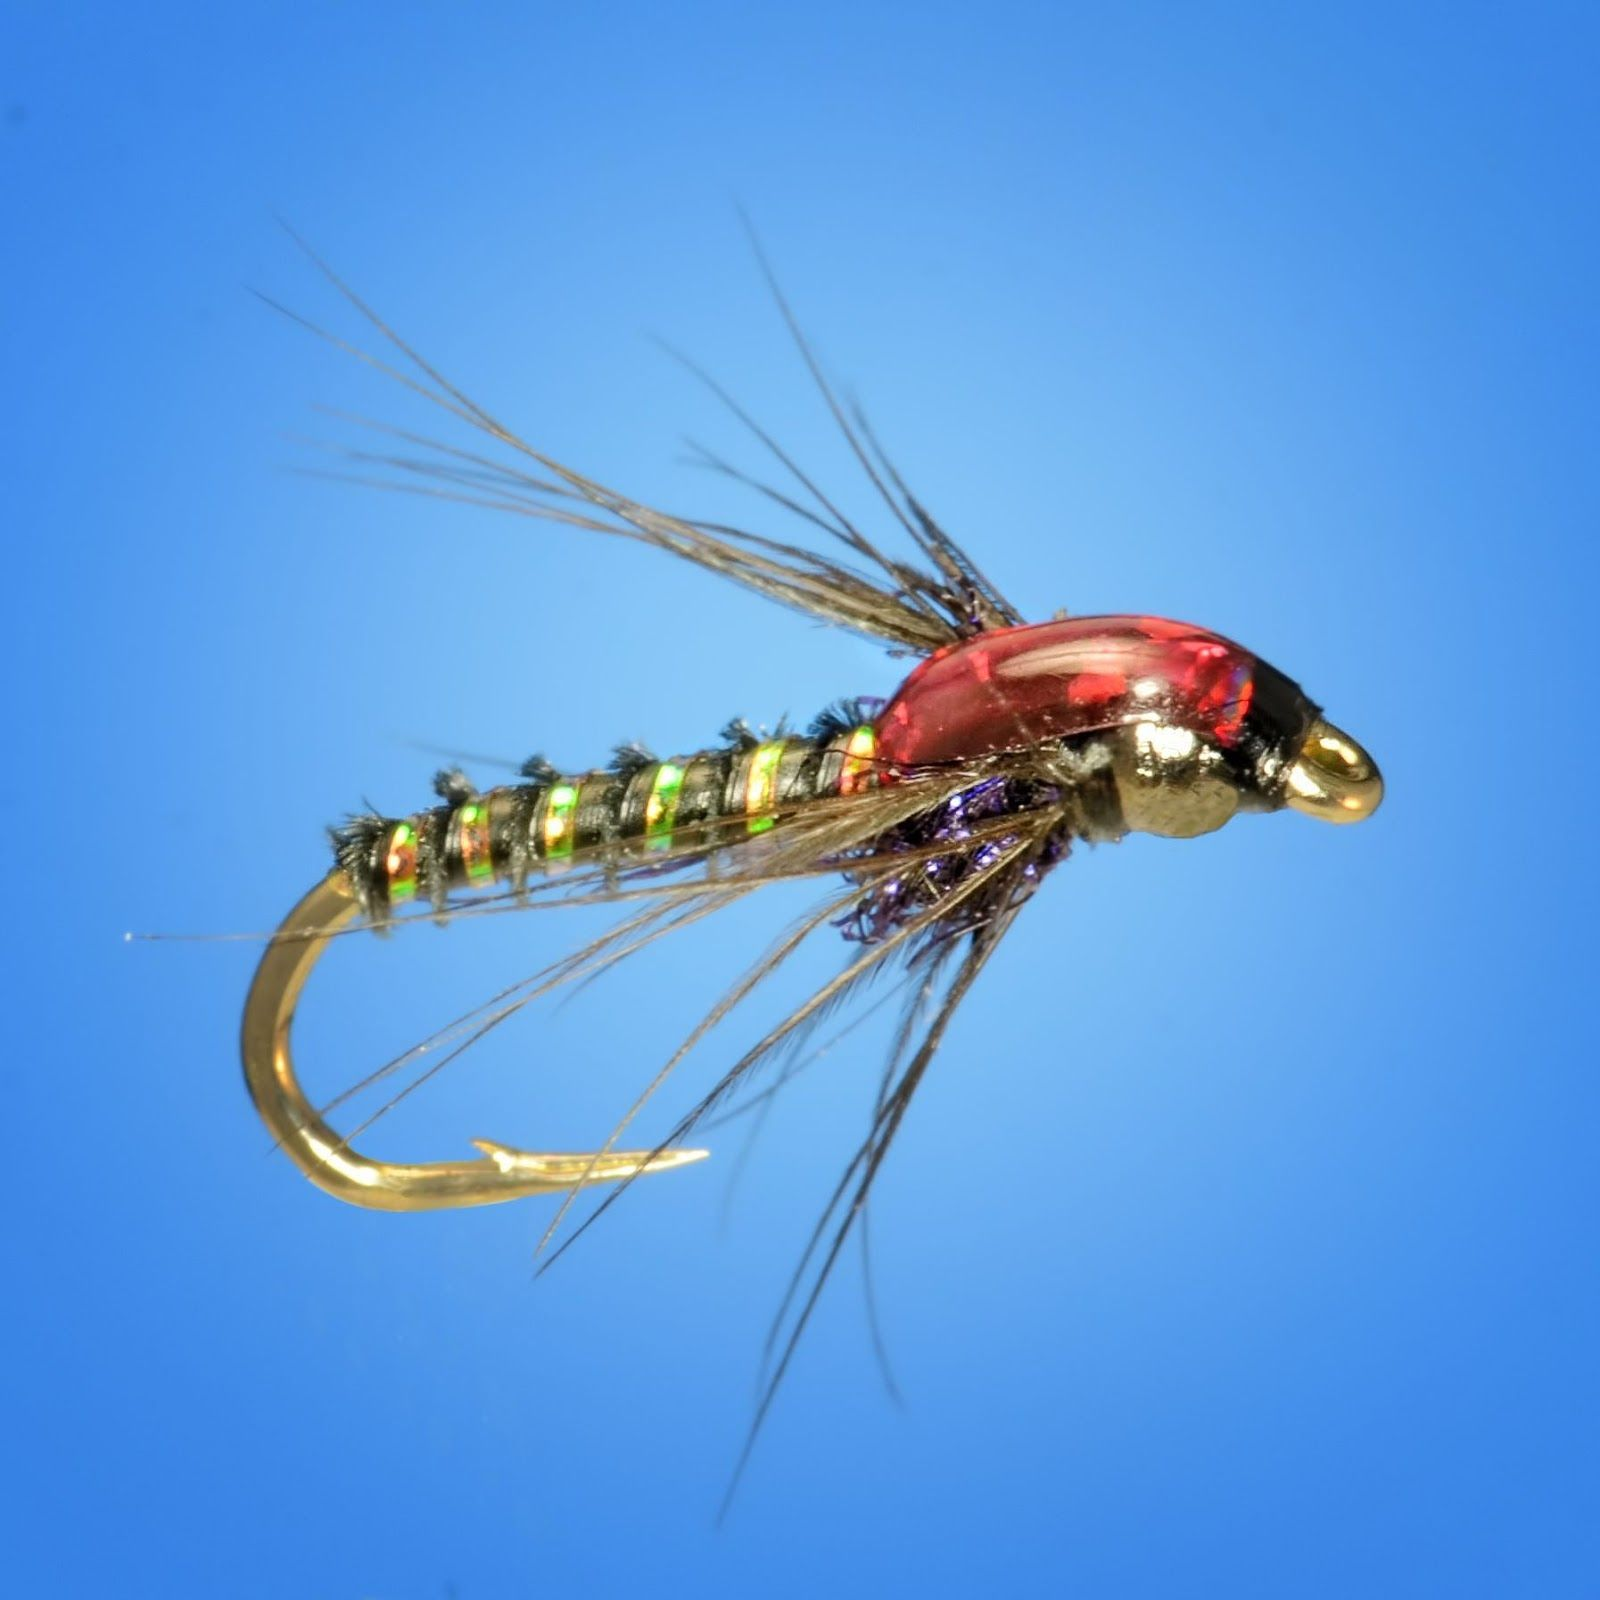 Fly fish food fly tying and fly fishing fly tying for Tying a fishing lure